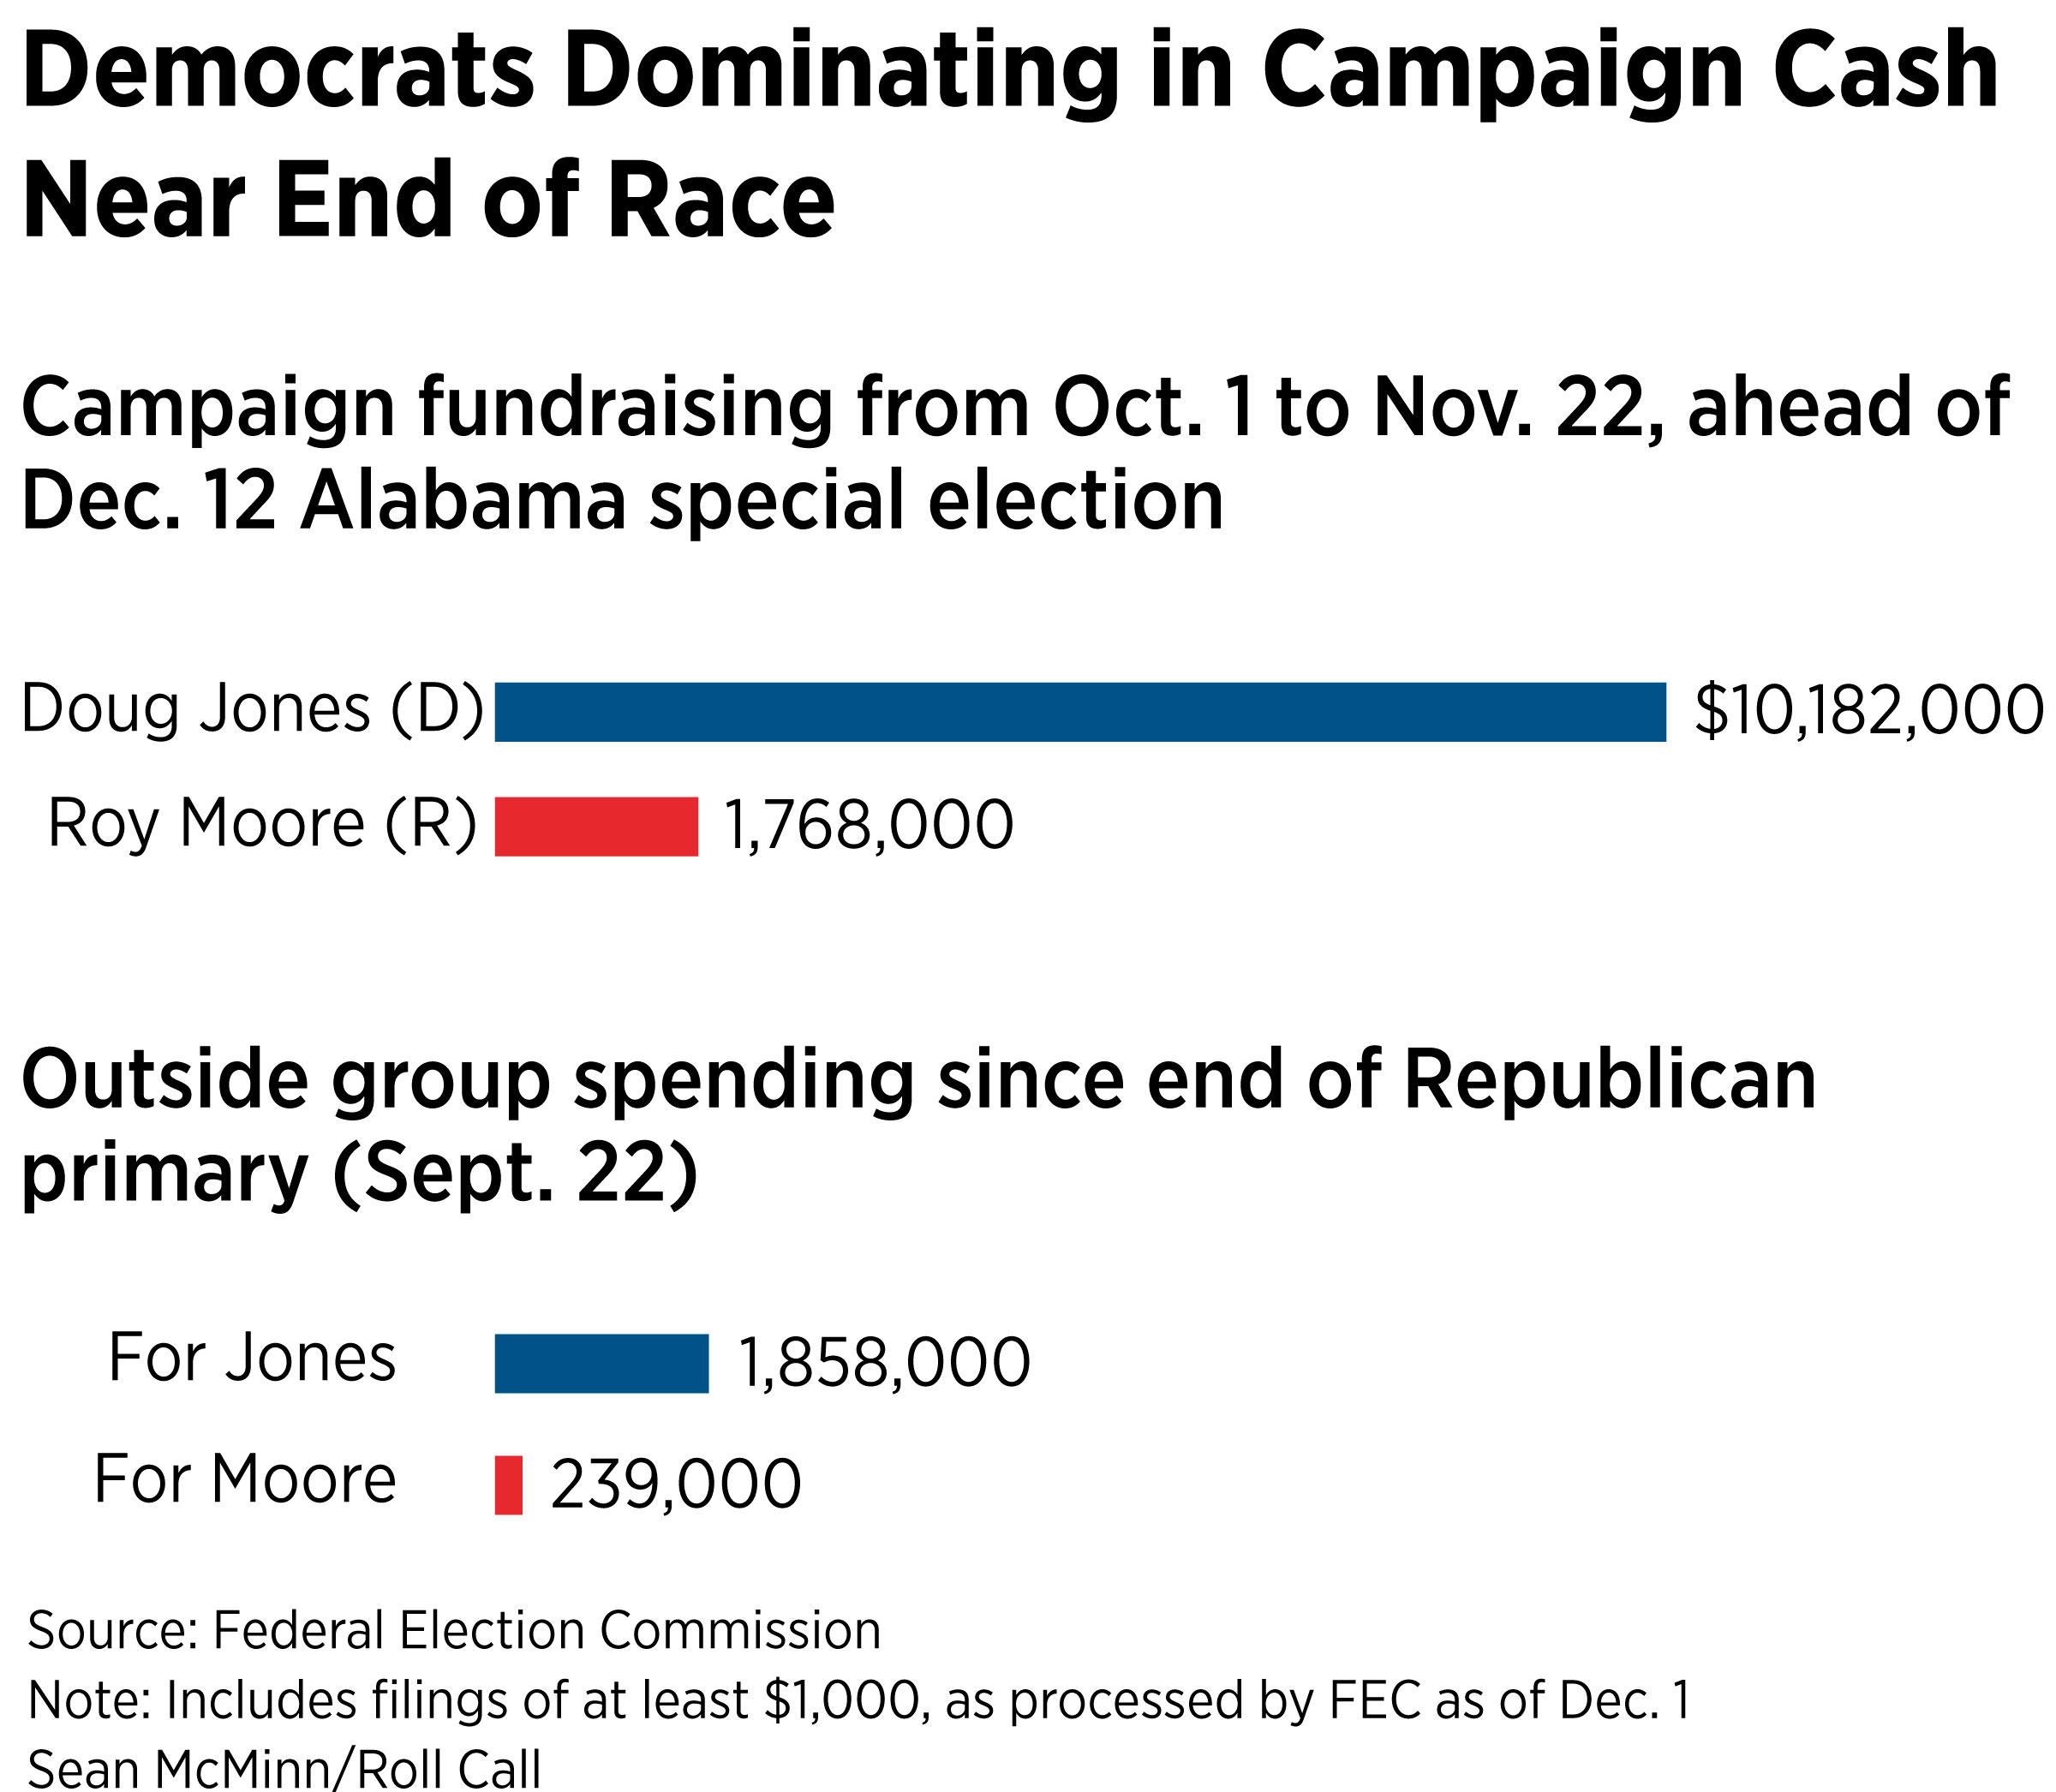 04Democrat_Outraising_Moore_Near_End_of_Race_receipts_chartbuilder-print